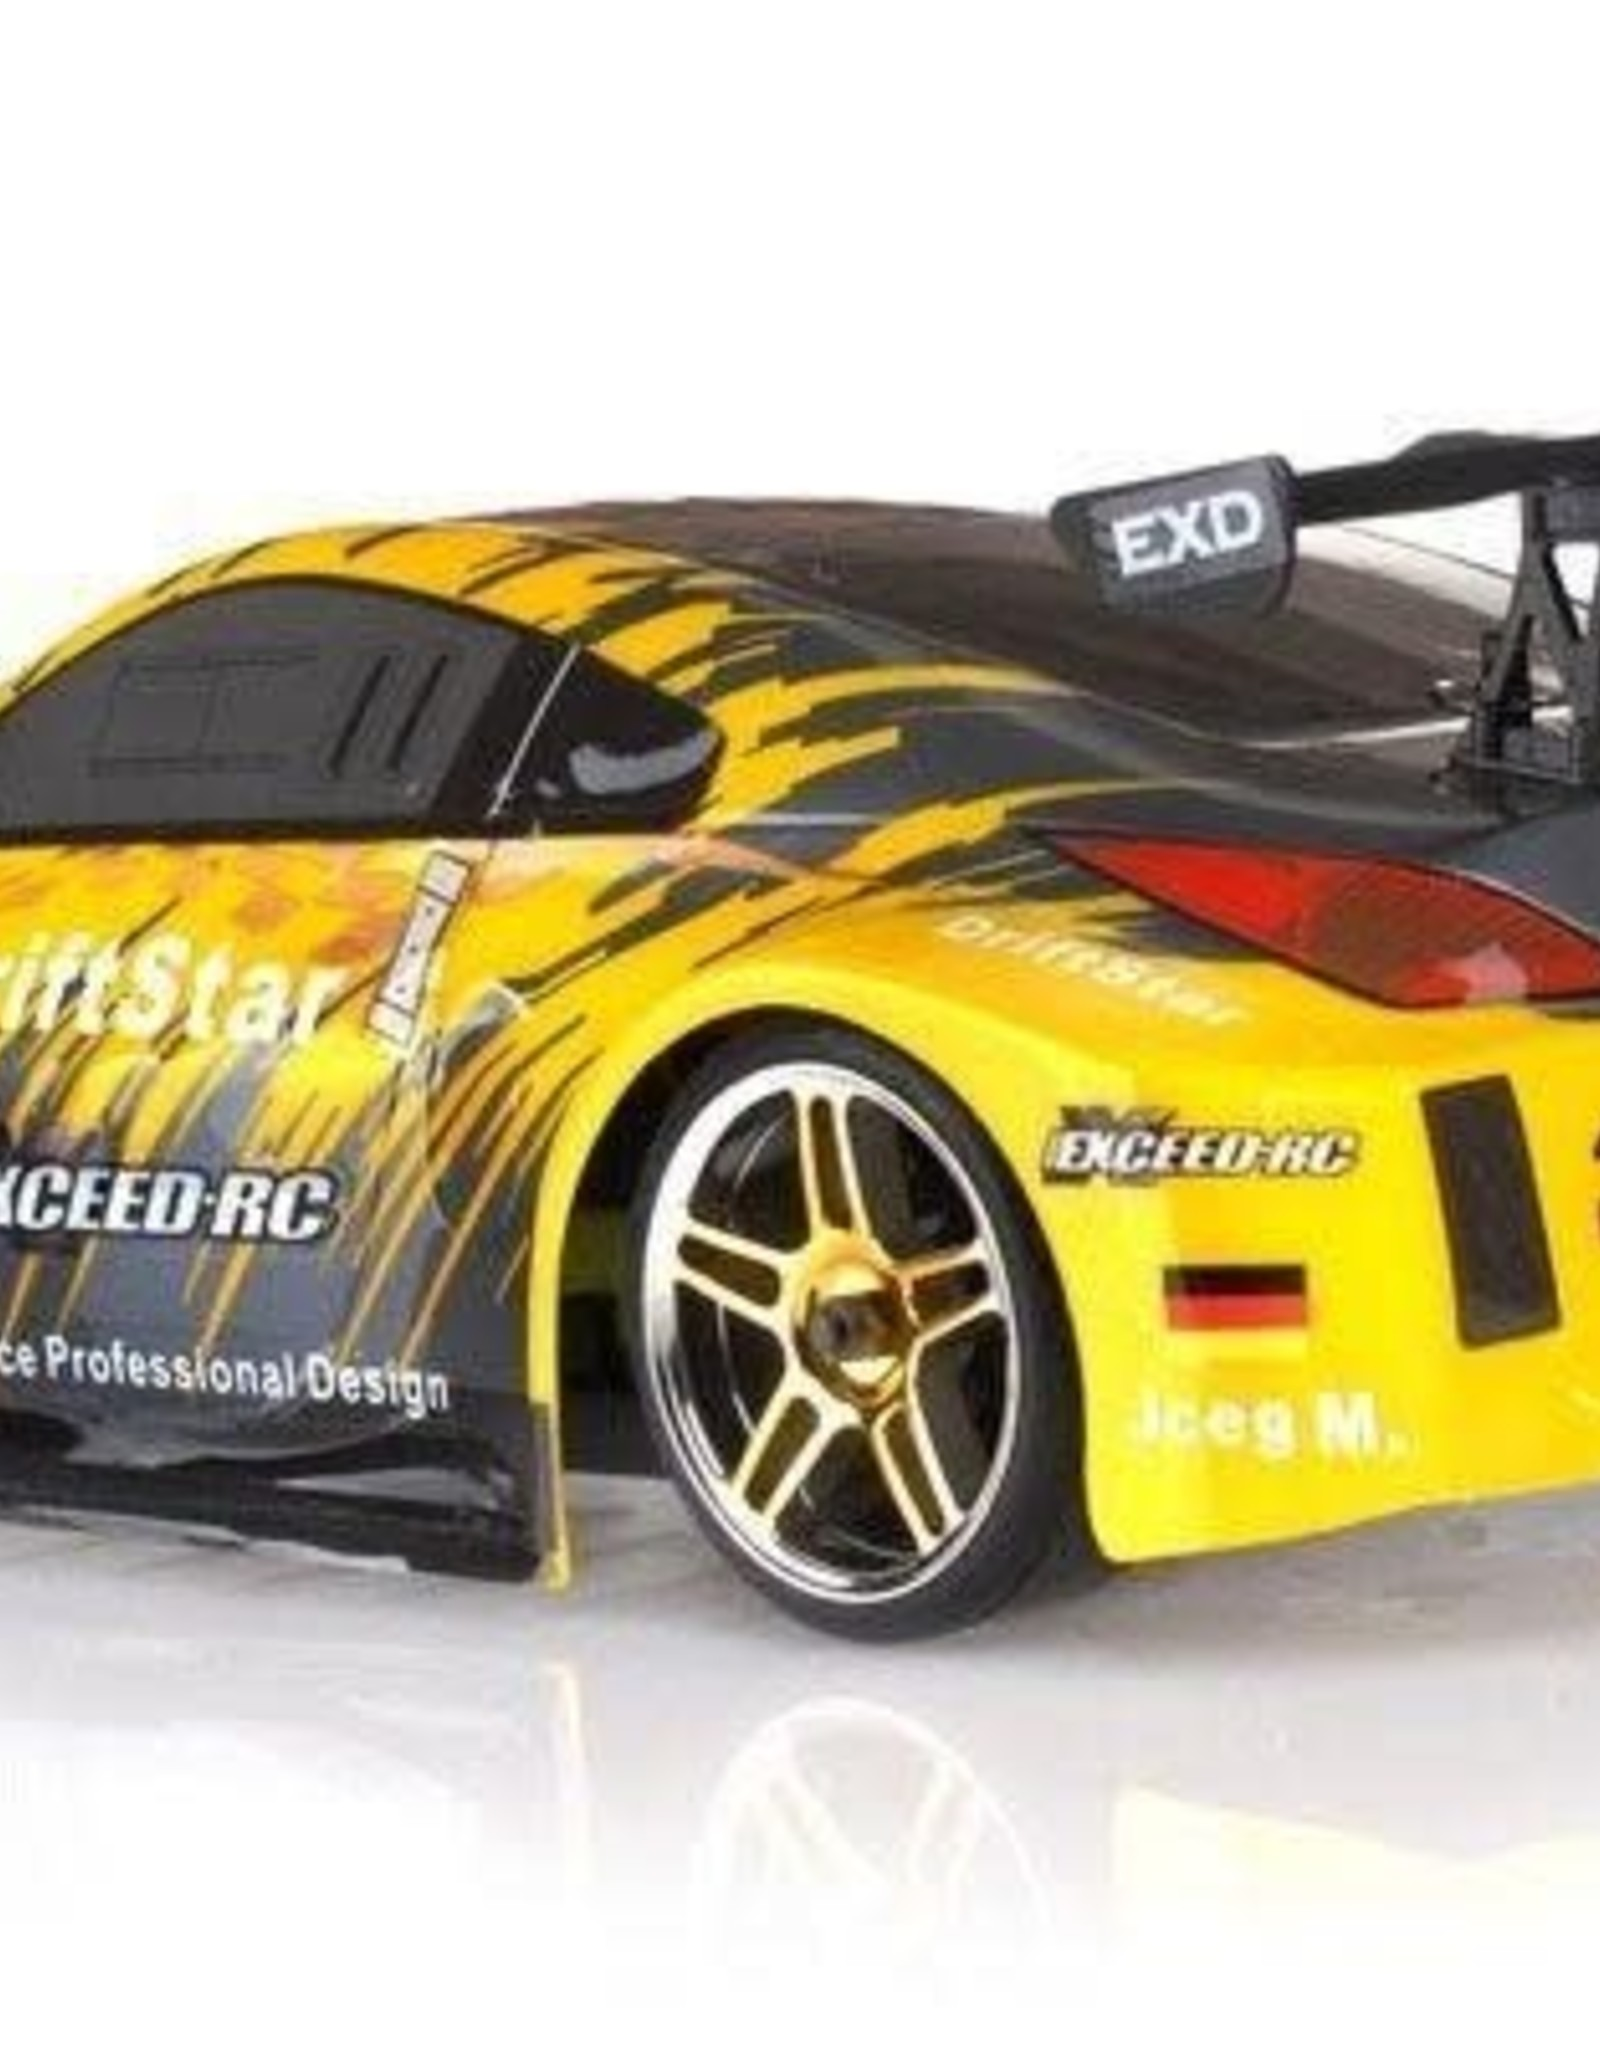 HSP Racing Rc Car 4wd 1:10 Electric Power On Road High Speed Drift Car Yellow